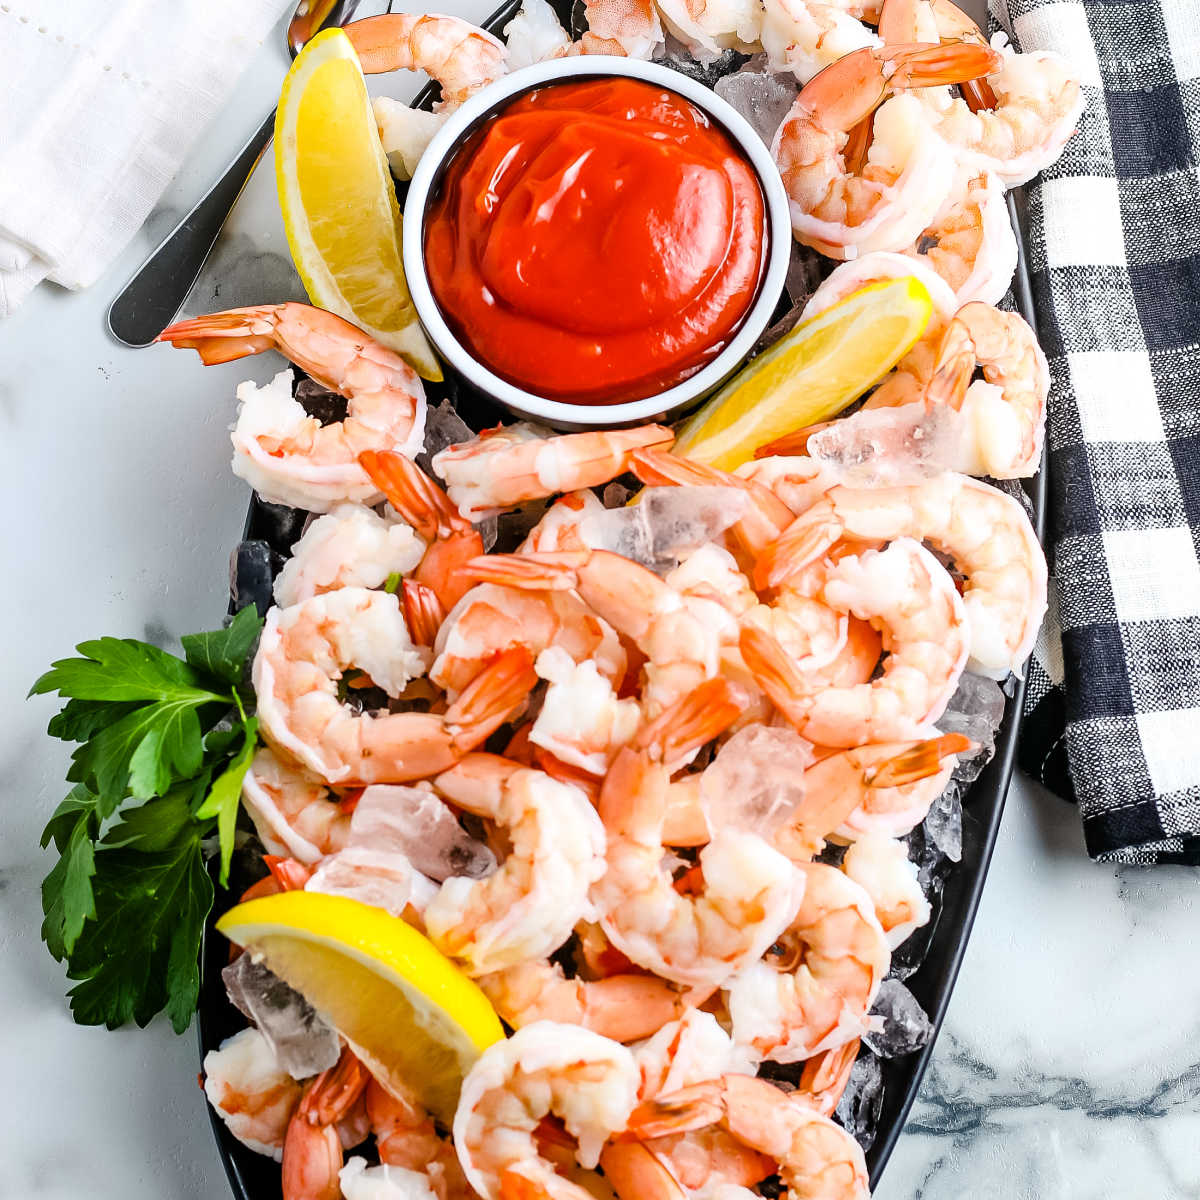 An overhead picture of the finished shrimp cocktail on a black platter.